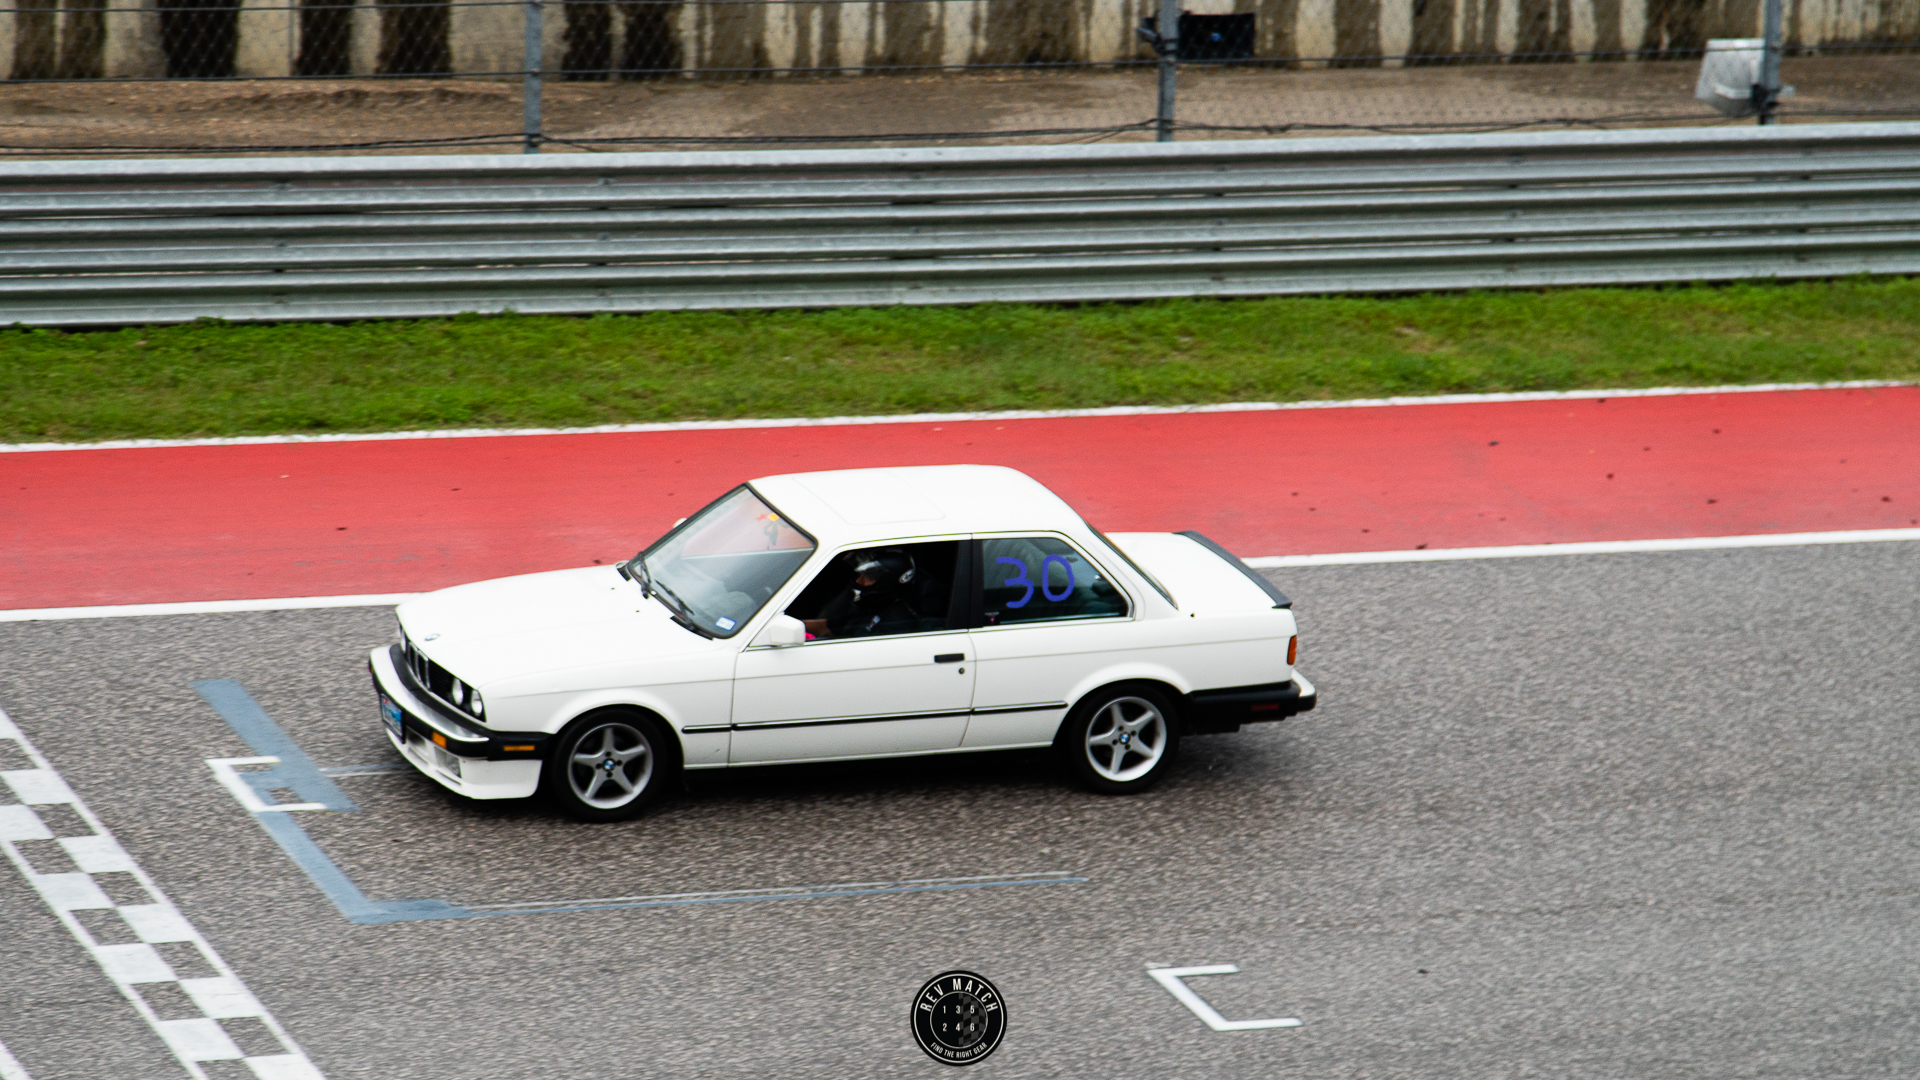 Edge Addict COTA May 2019 Rev Match Media-56.jpg